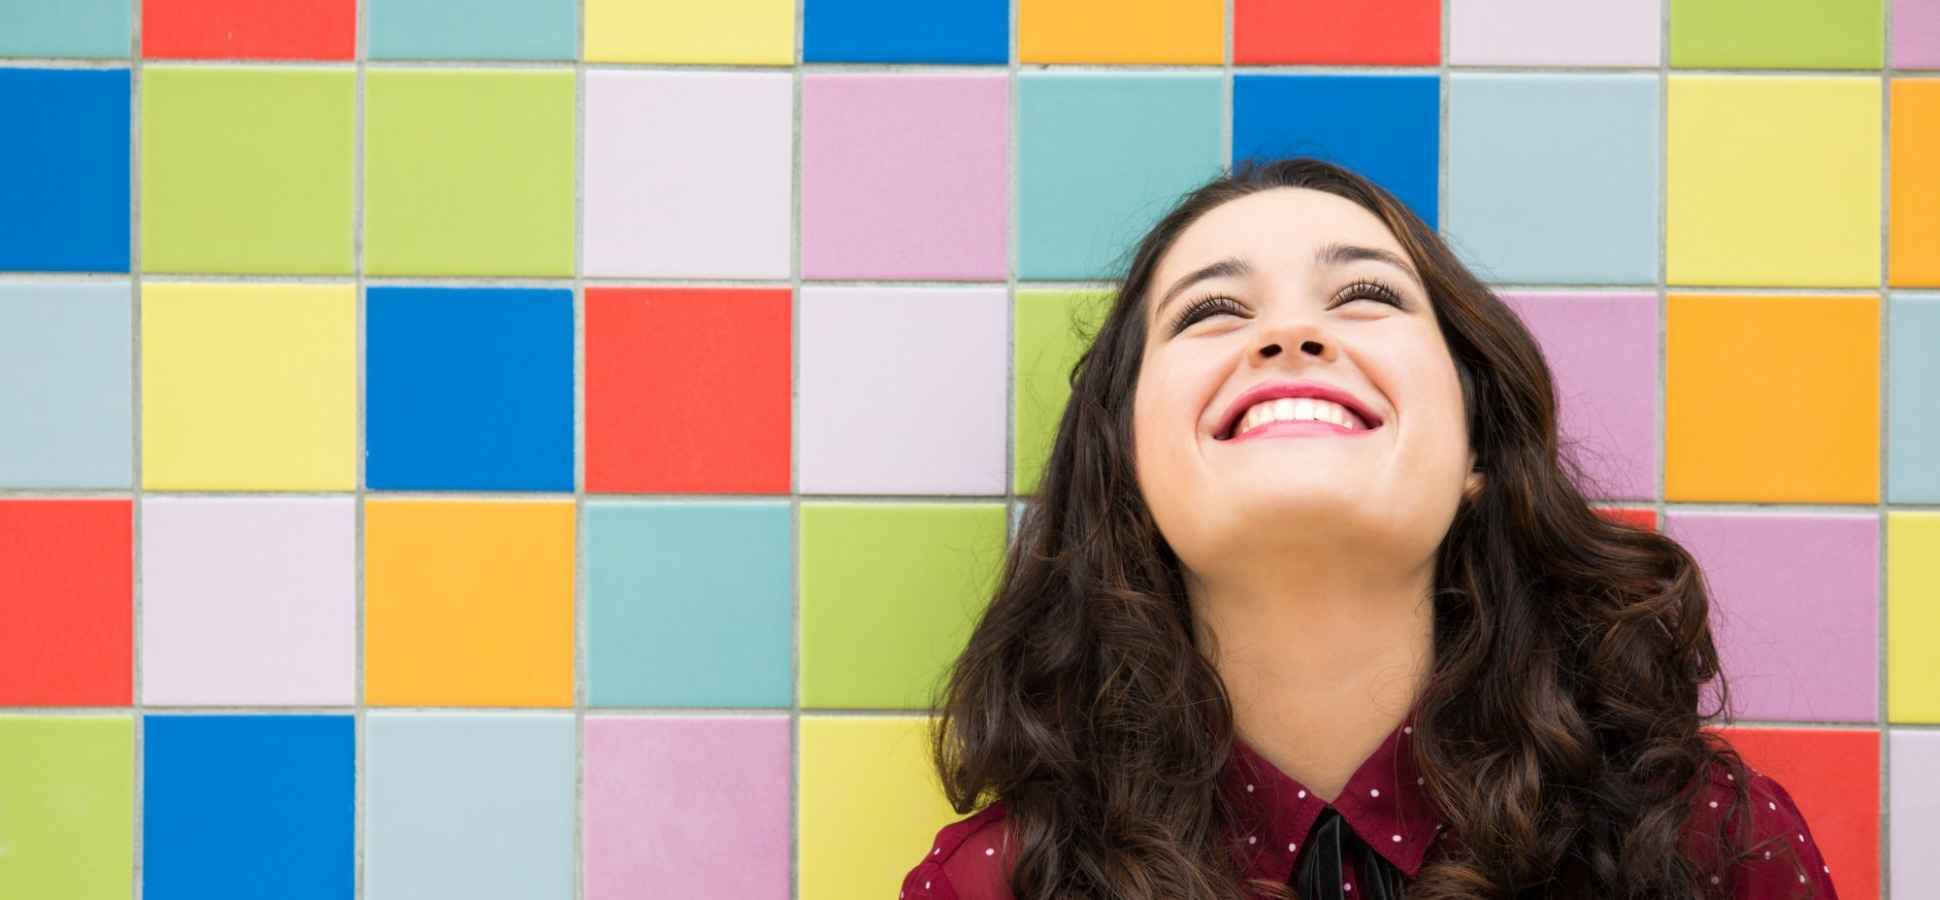 The 12 Habits of Happy People